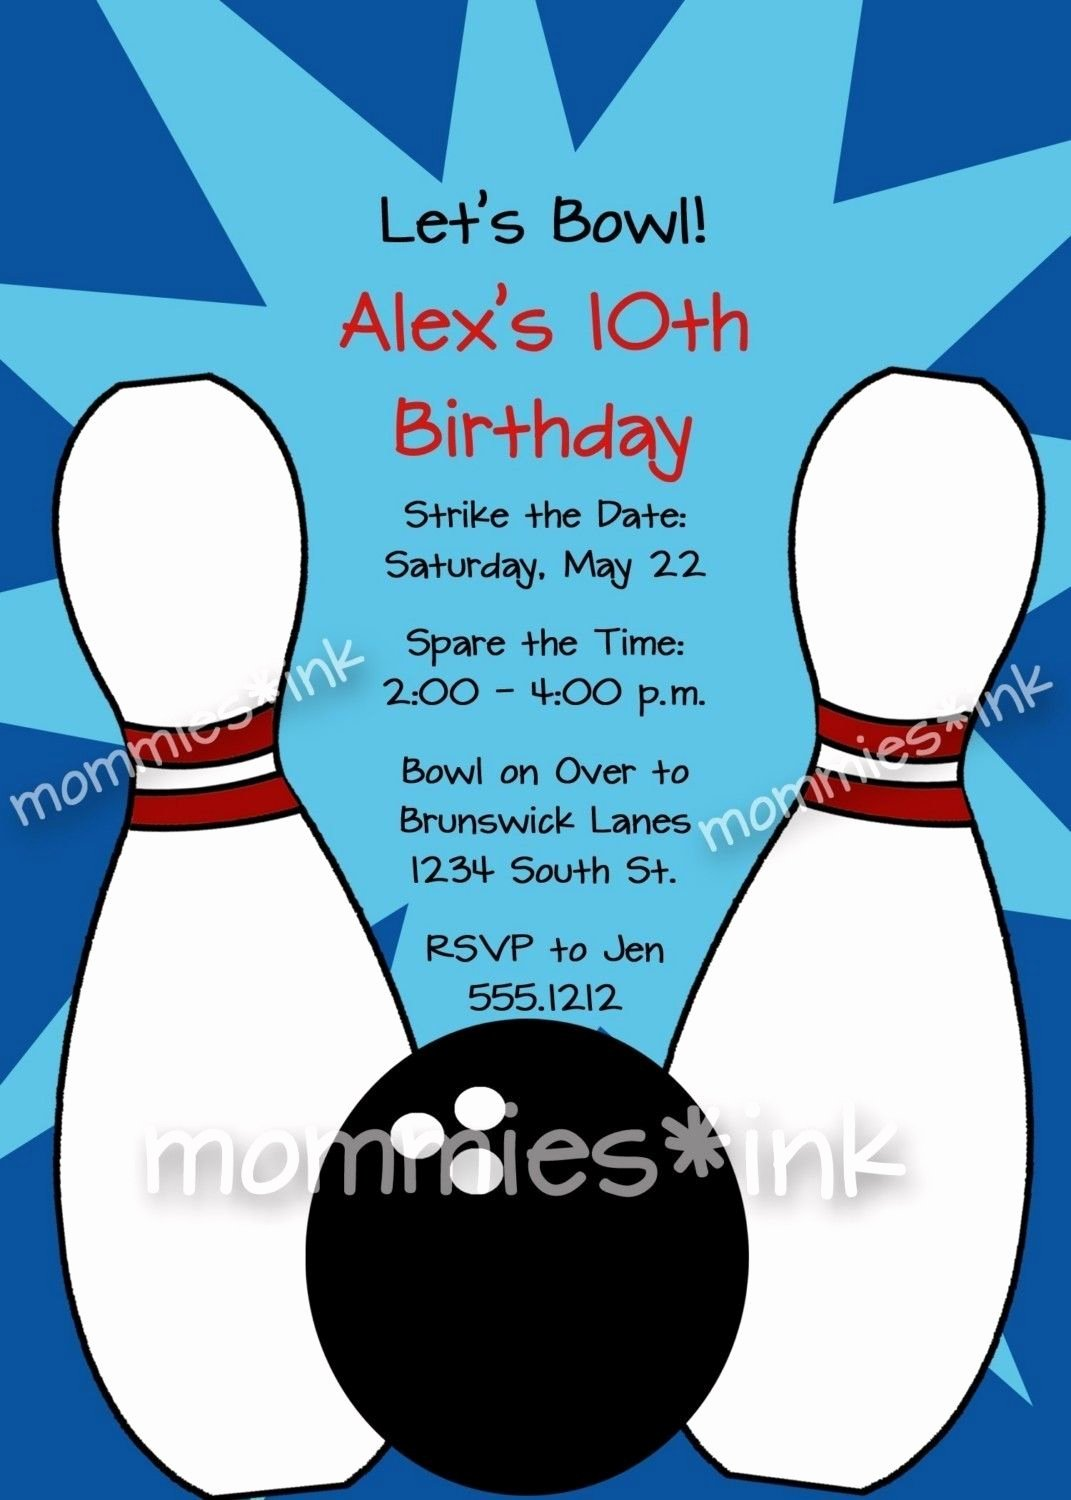 Free Bowling Party Invitations Templates with Blue